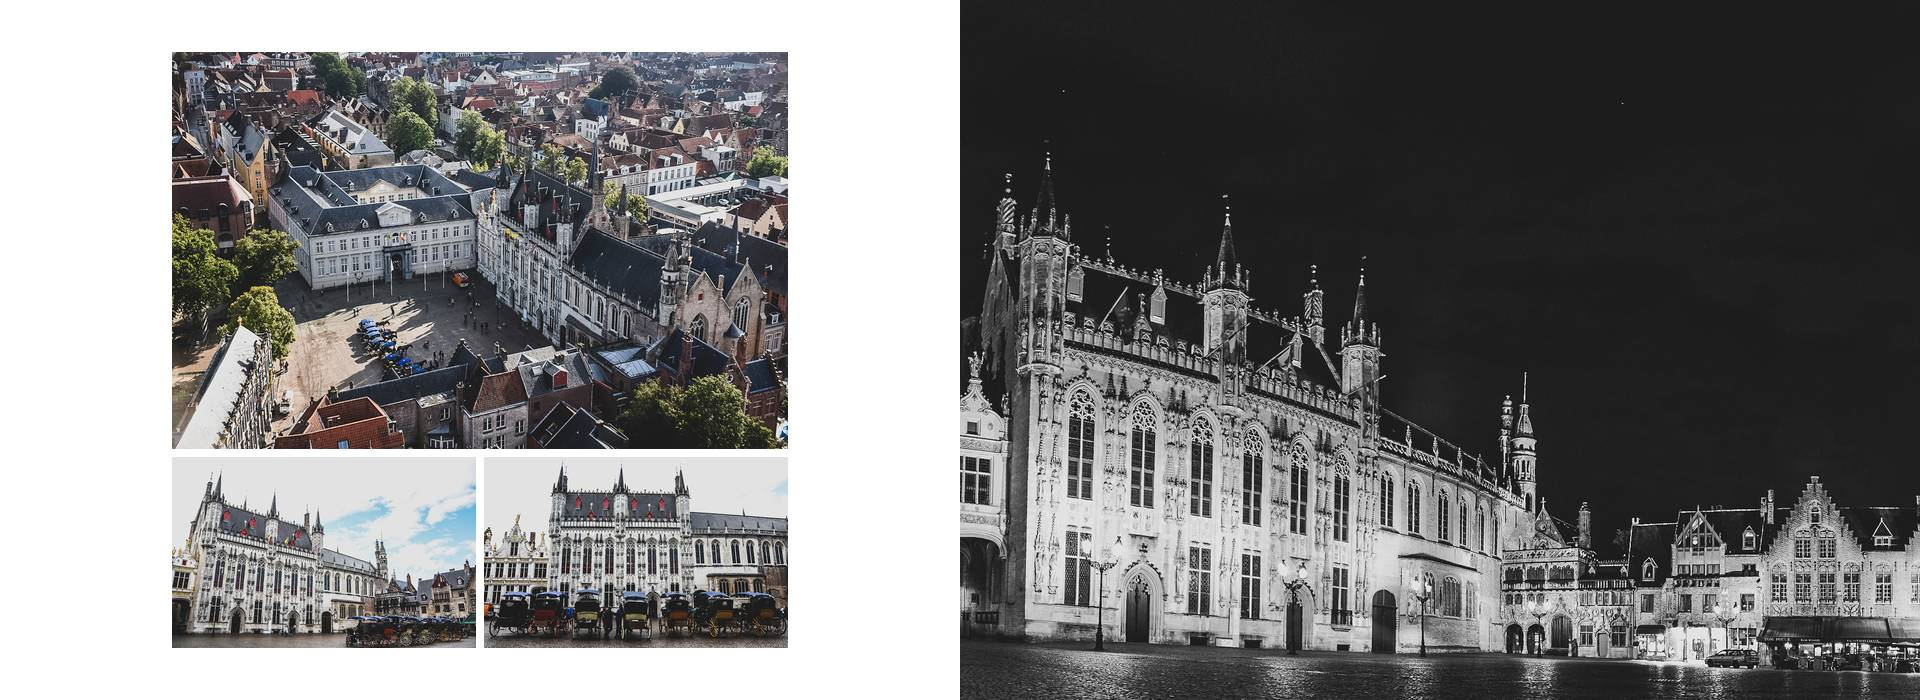 Live your Life - Brujas - Burg